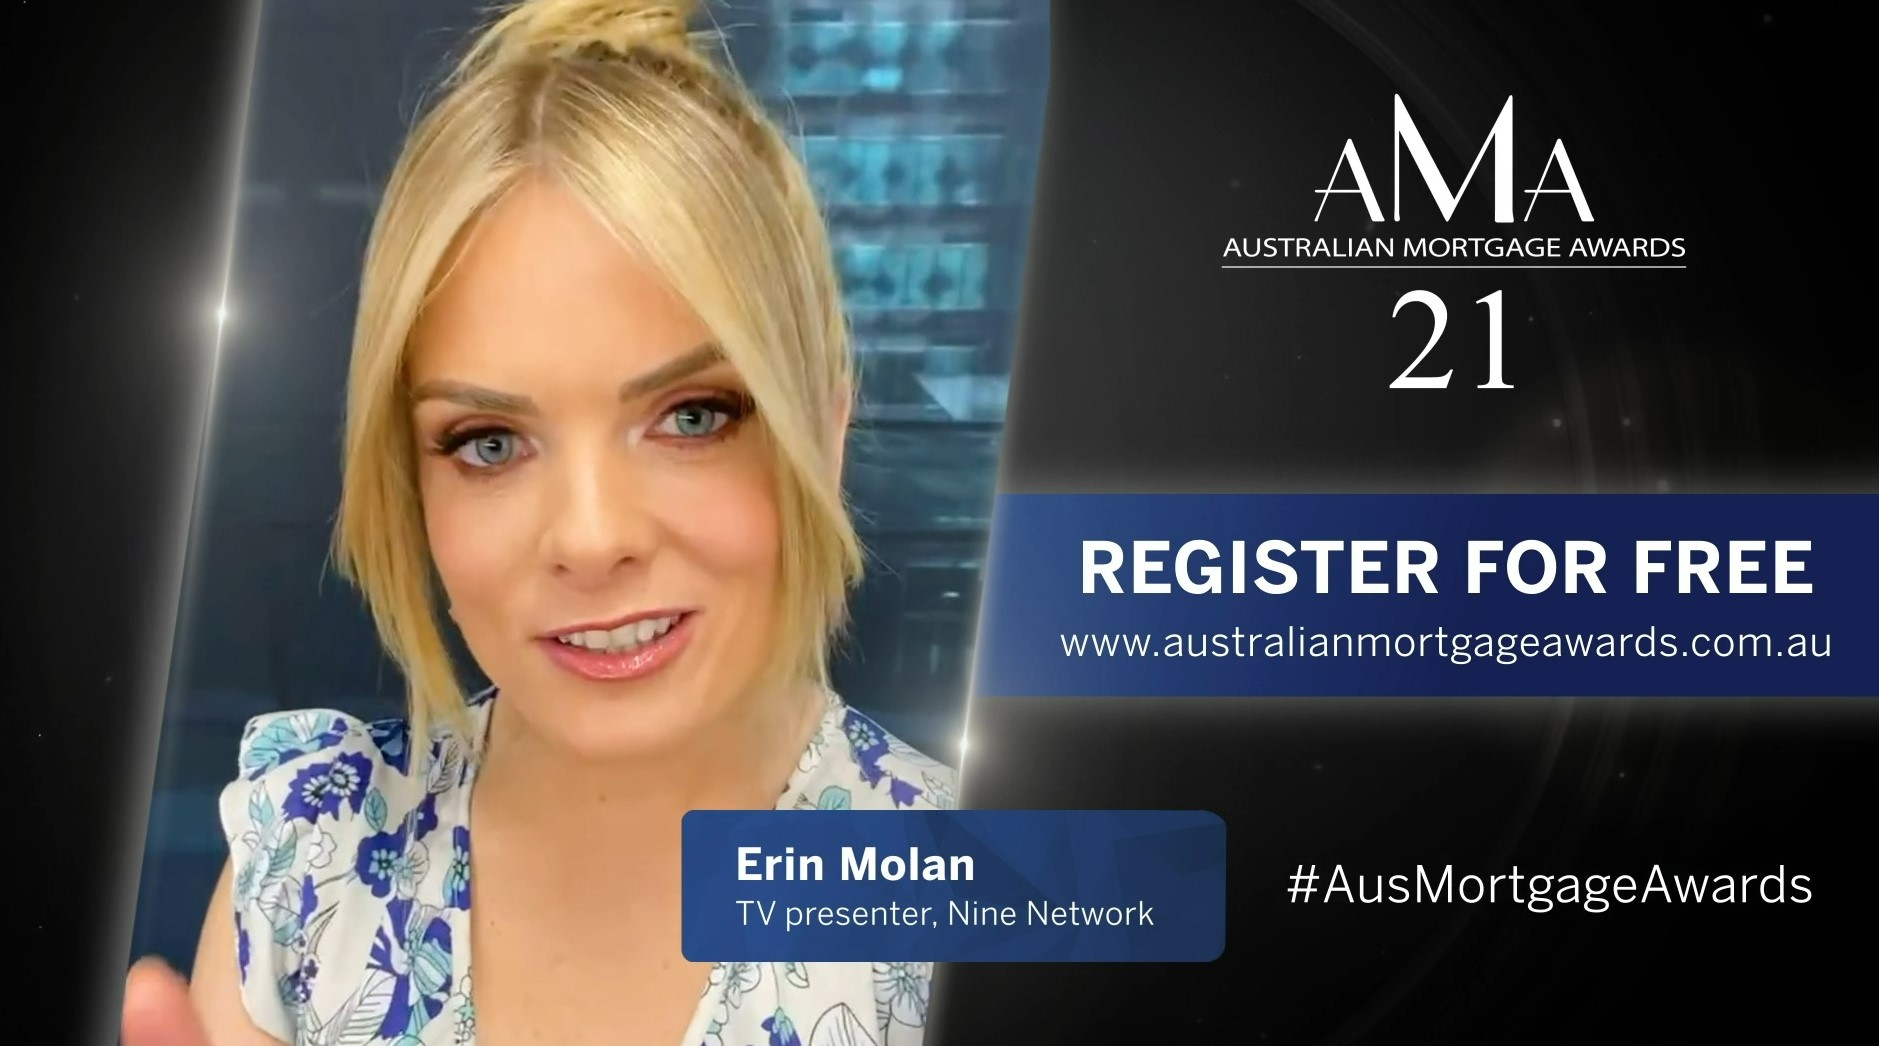 Meet your host for the virtual Australian Mortgage Awards 2021